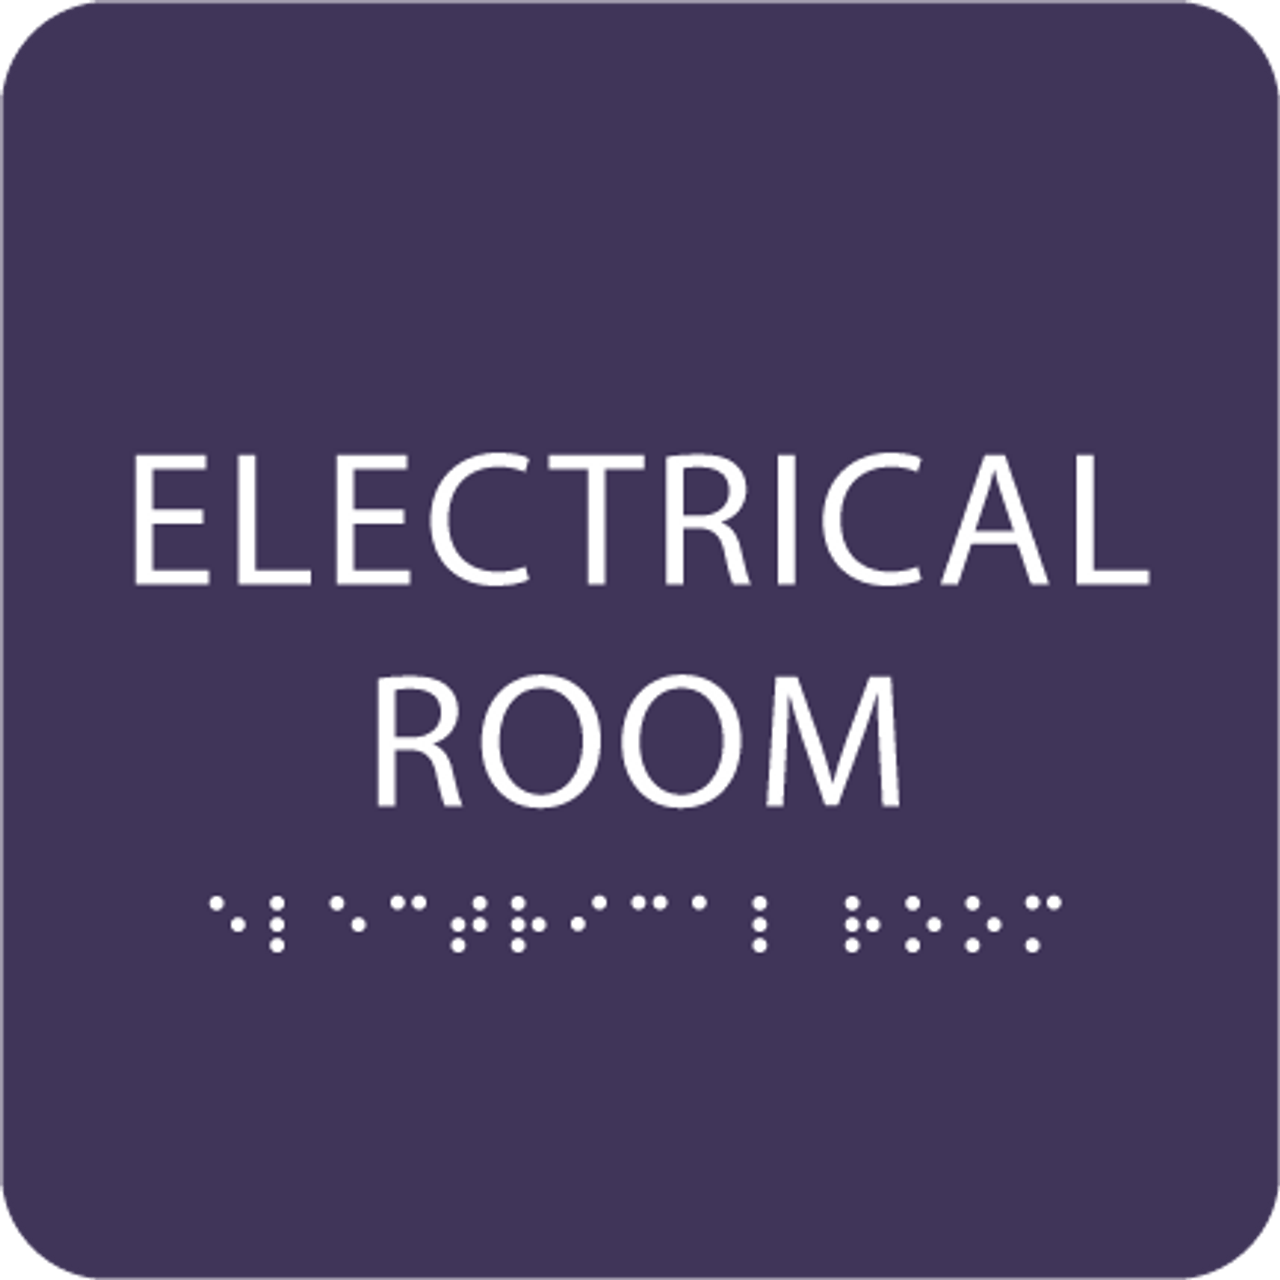 Purple Tactile Electrical Room Sign